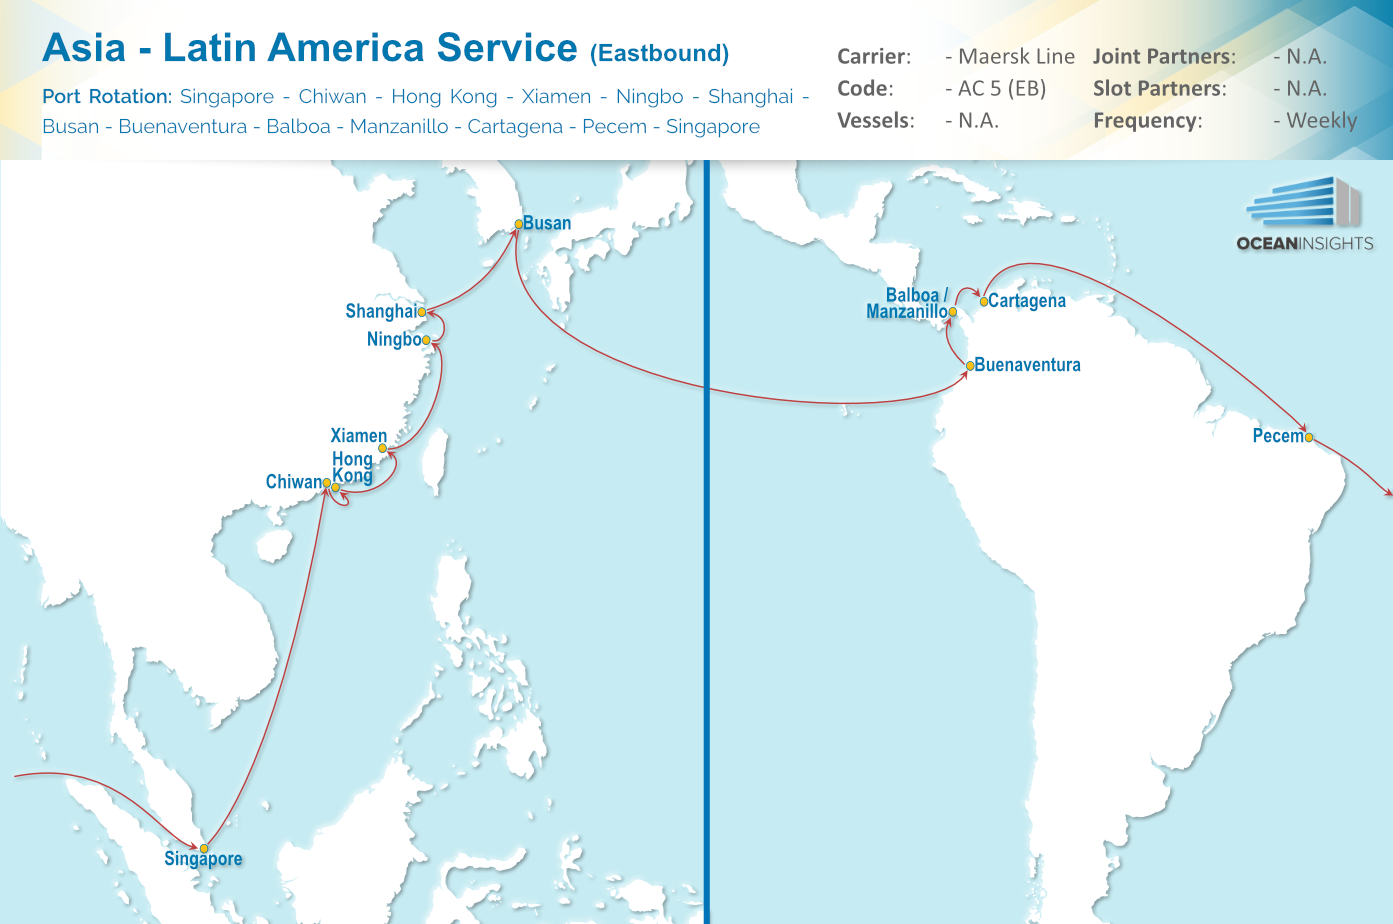 Maersk Line: New Service between Asia and Latin America (AC5)